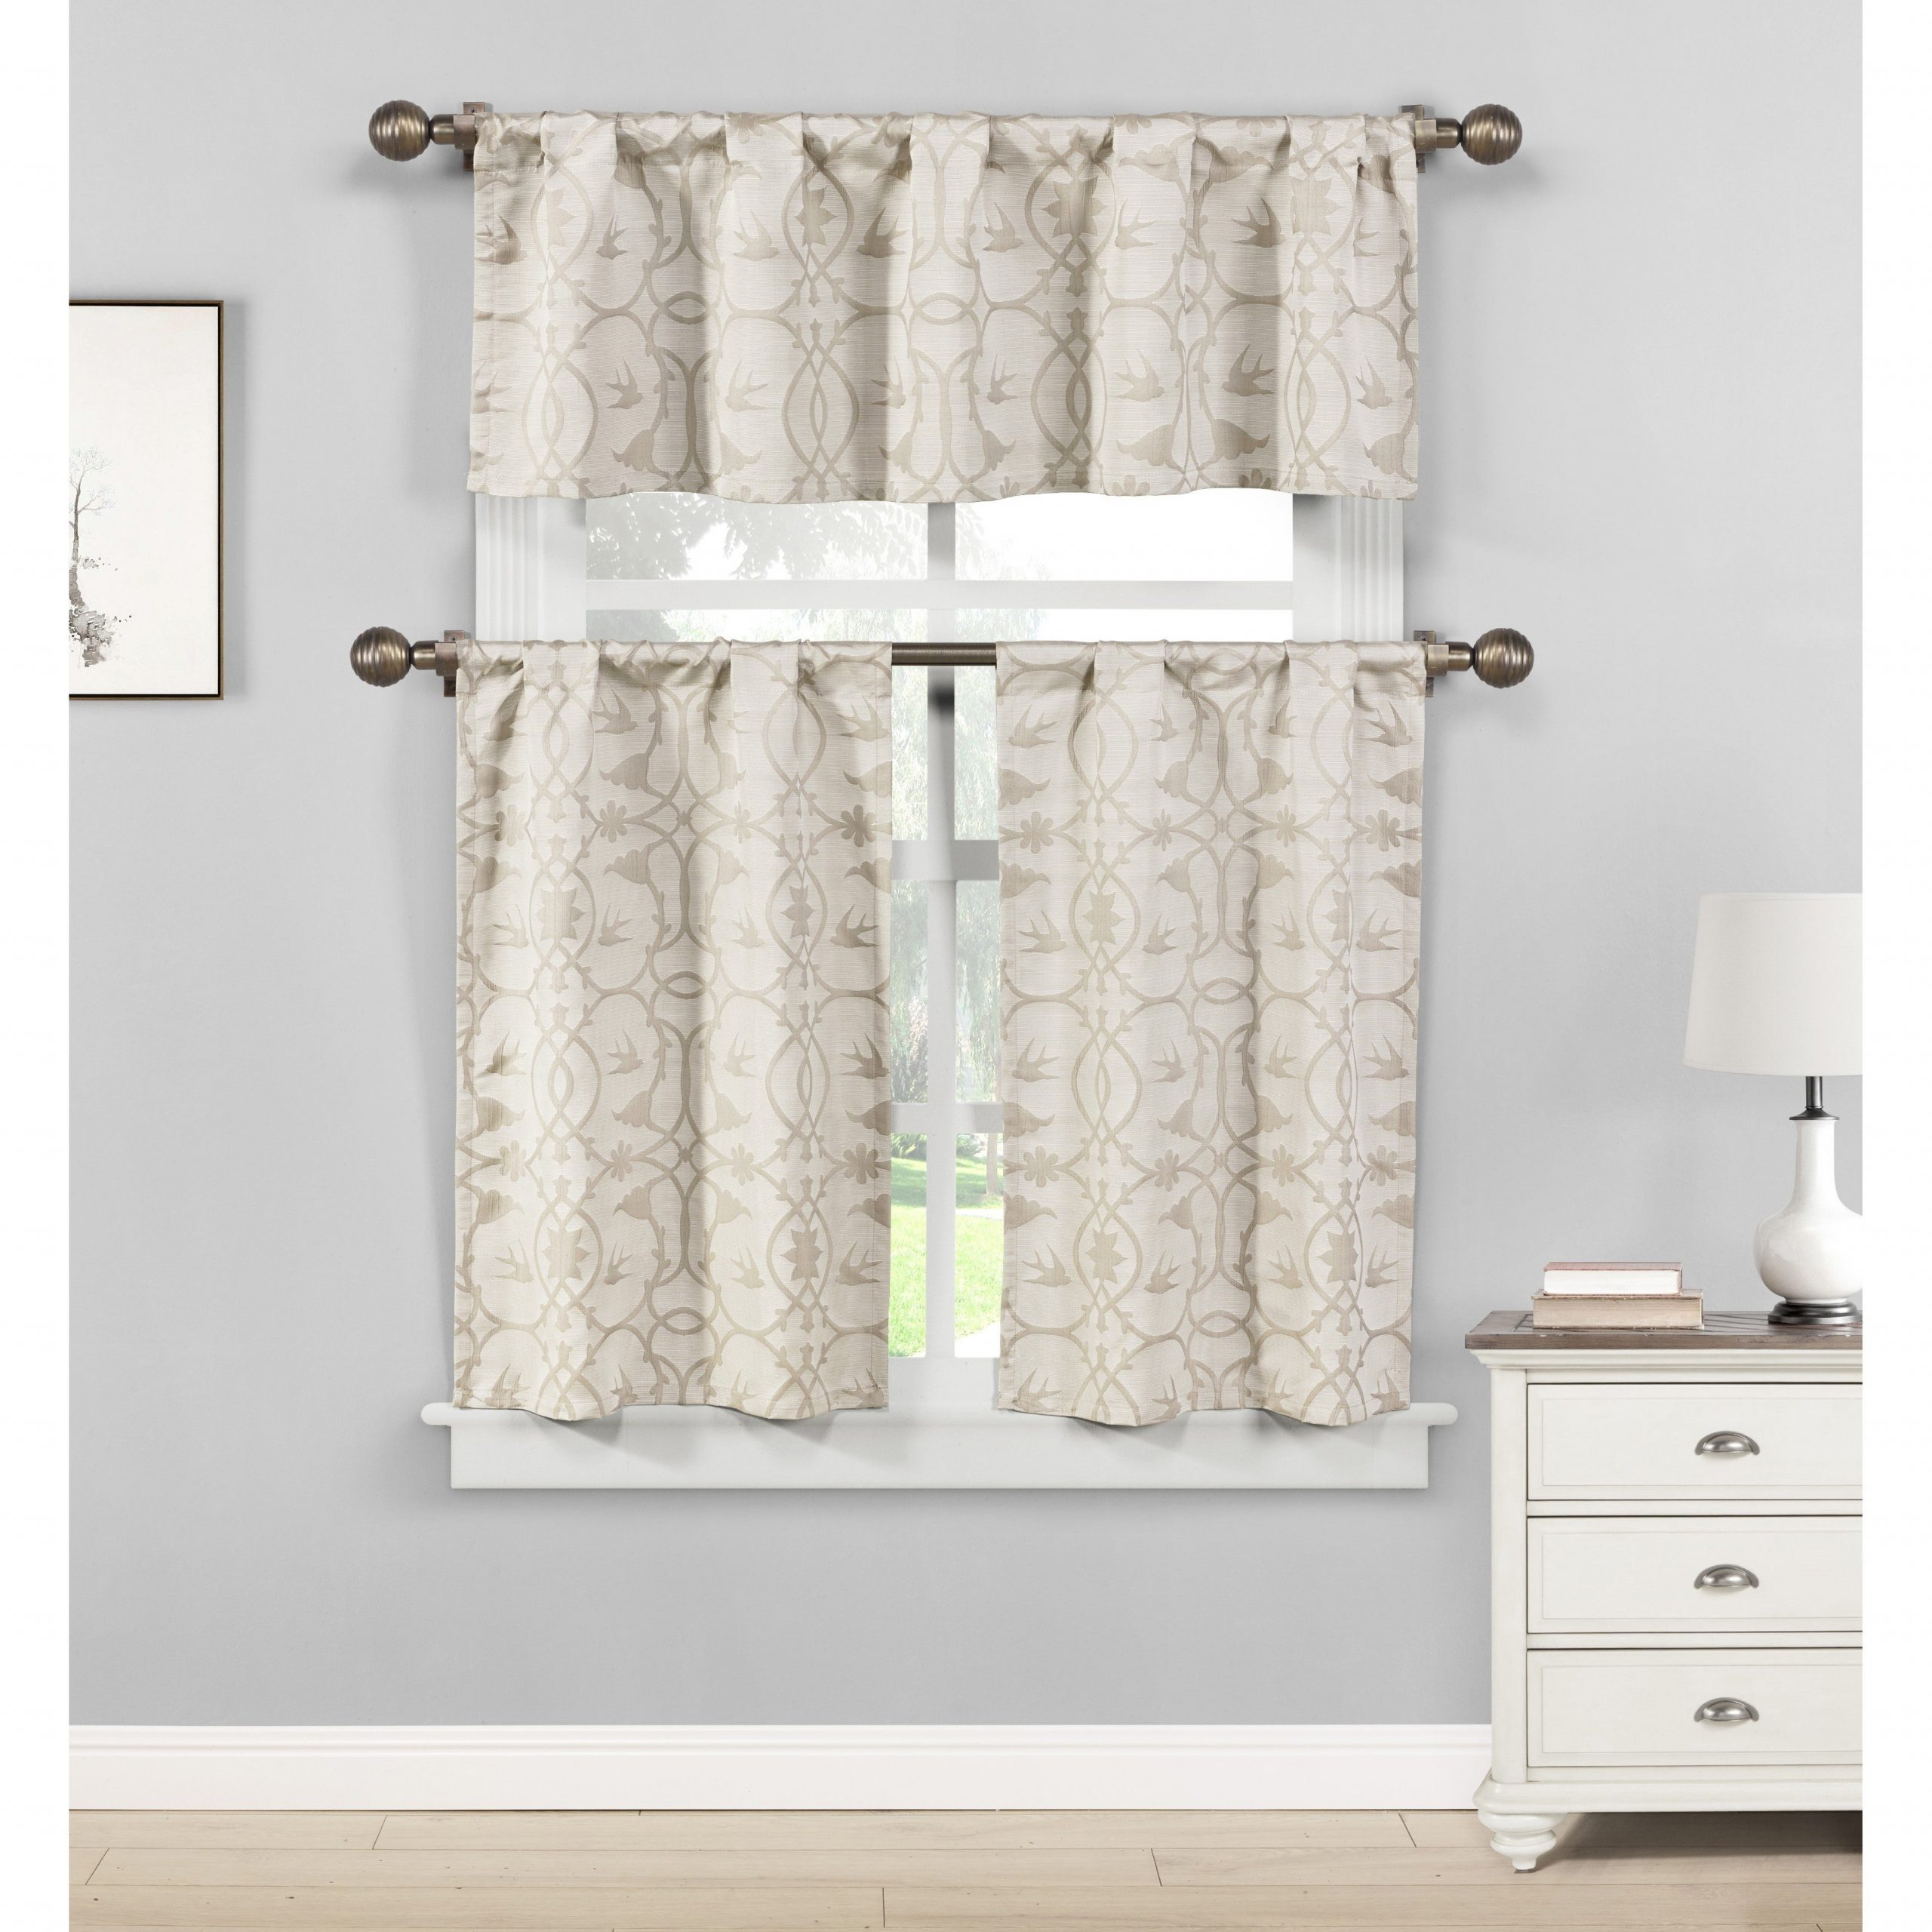 Twill 3 Piece Kitchen Curtain Tier Sets For Most Recent Duck River Dawn Birds Linen Look Jacquard 3 Piece Kitchen Curtain Tier (View 20 of 20)